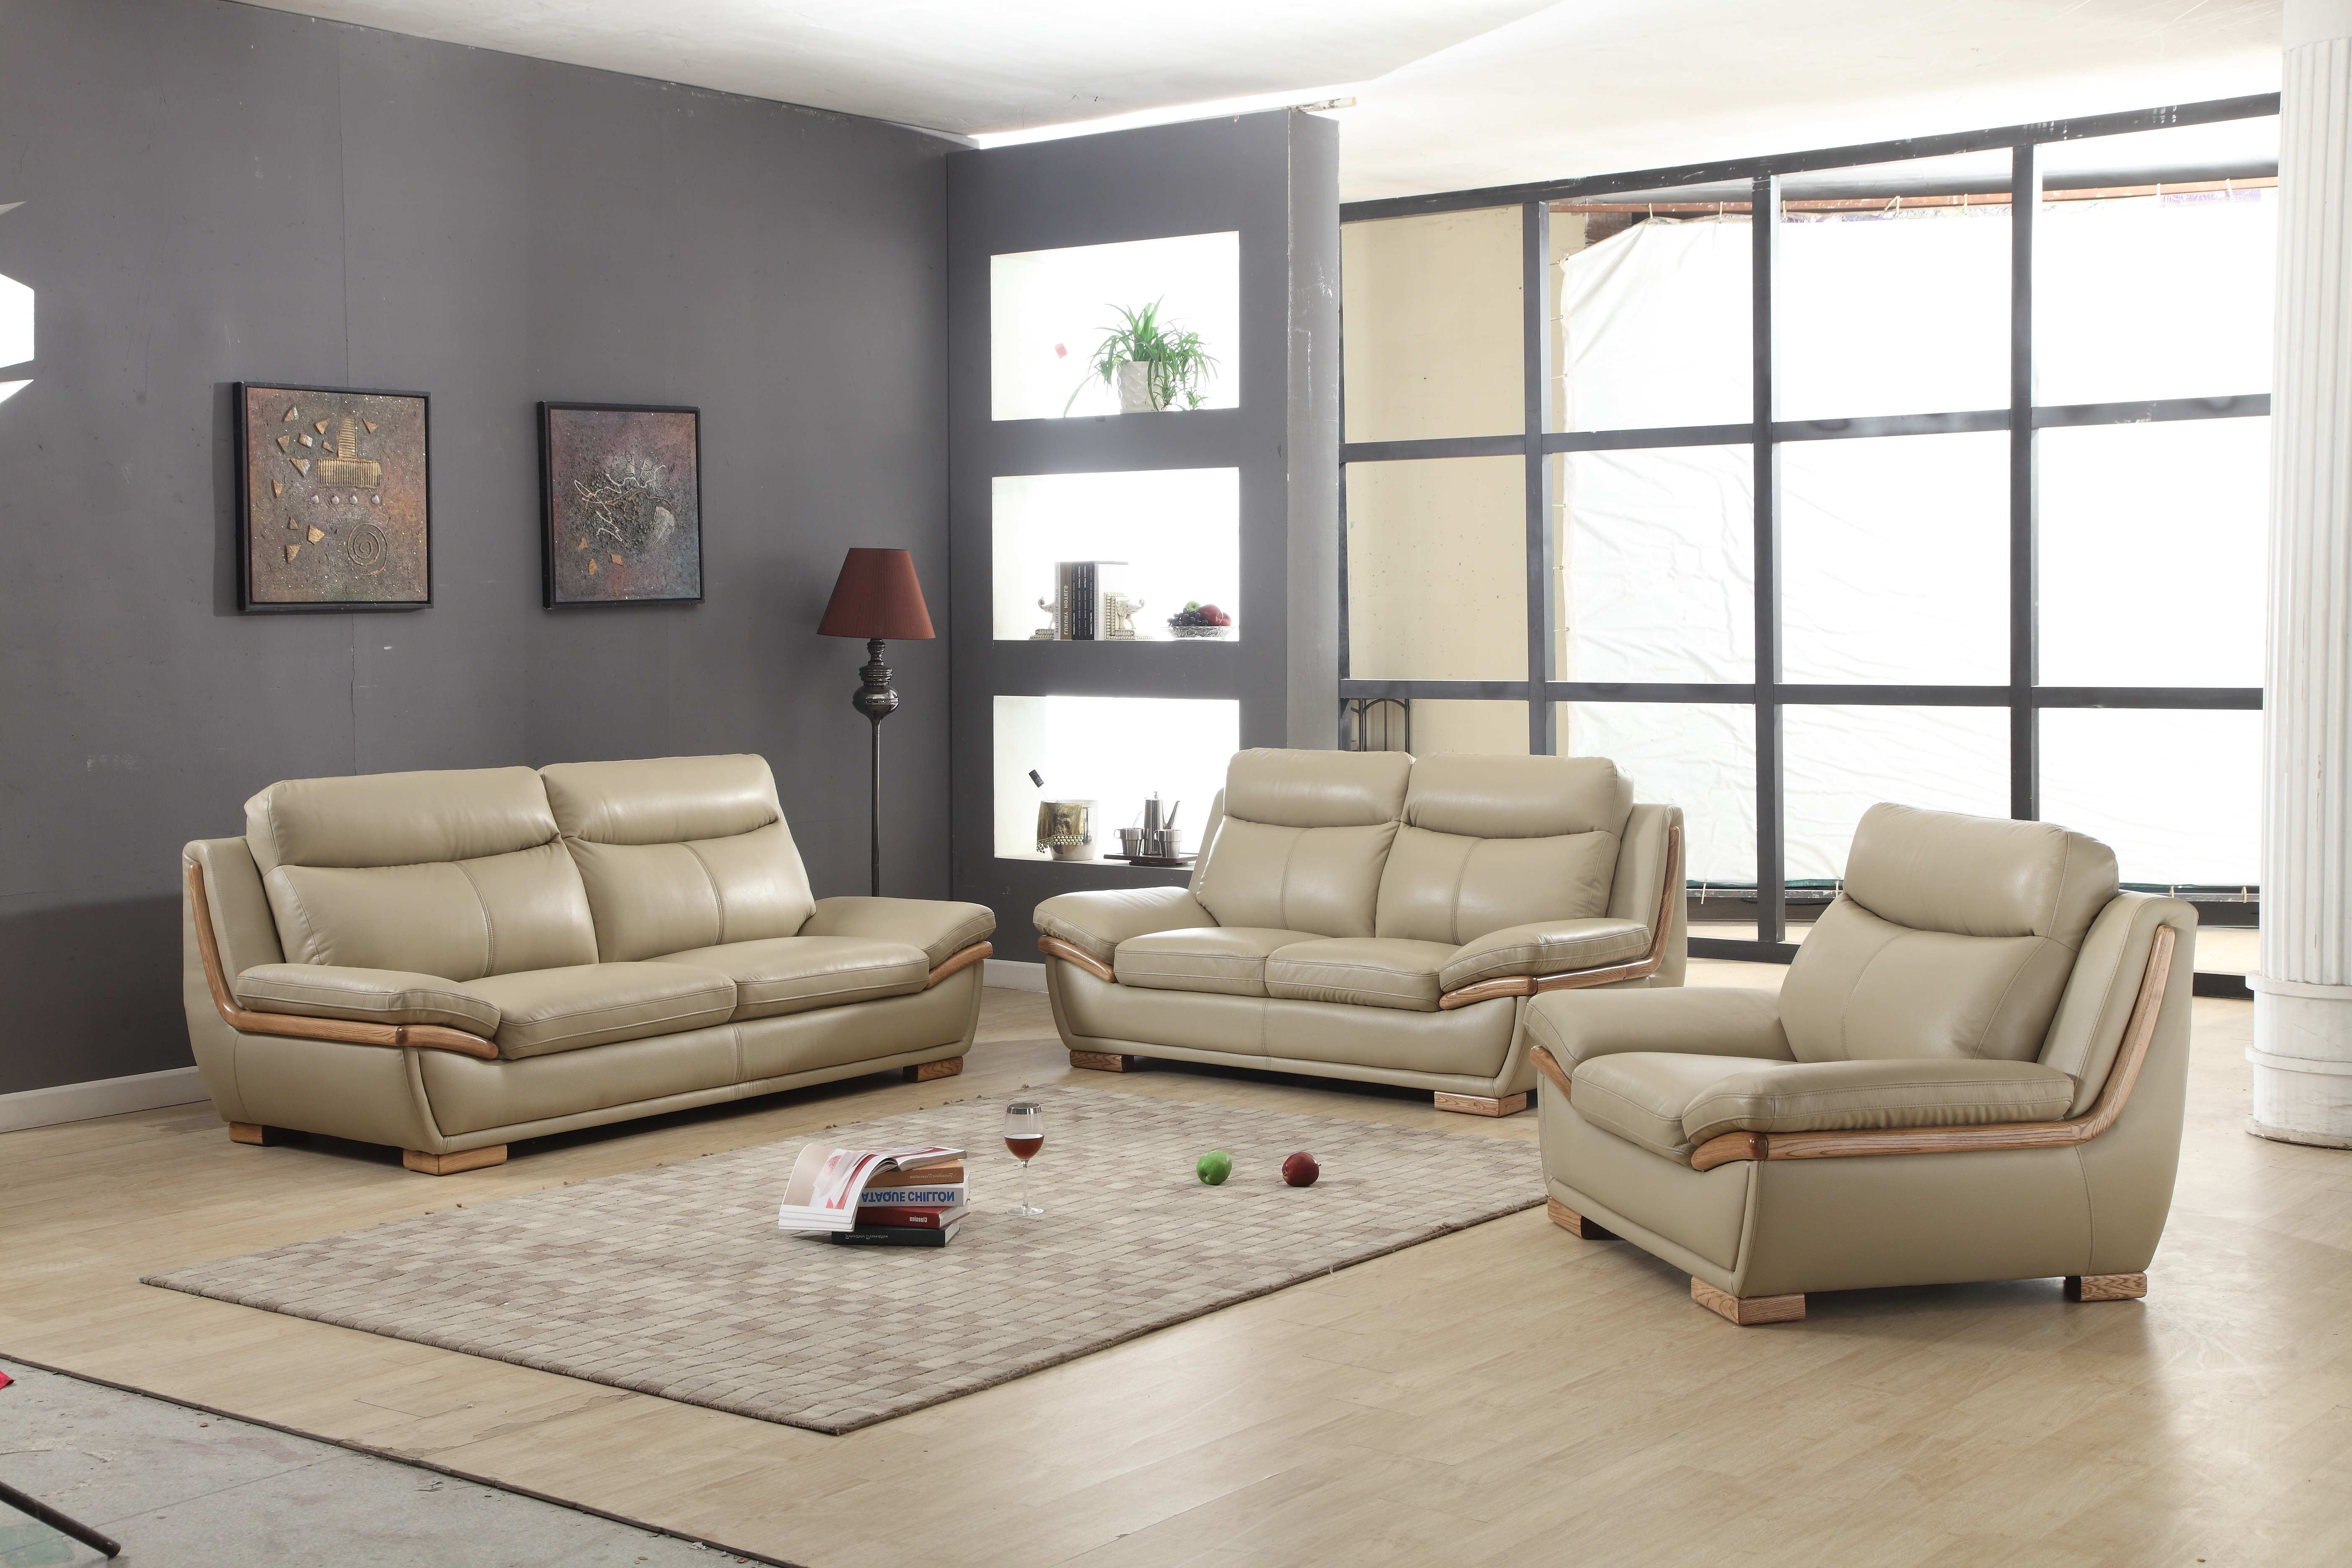 The Brick Leather Sofas In Most Current Modern Leather Sofa Black Bed Sleeper (View 18 of 20)